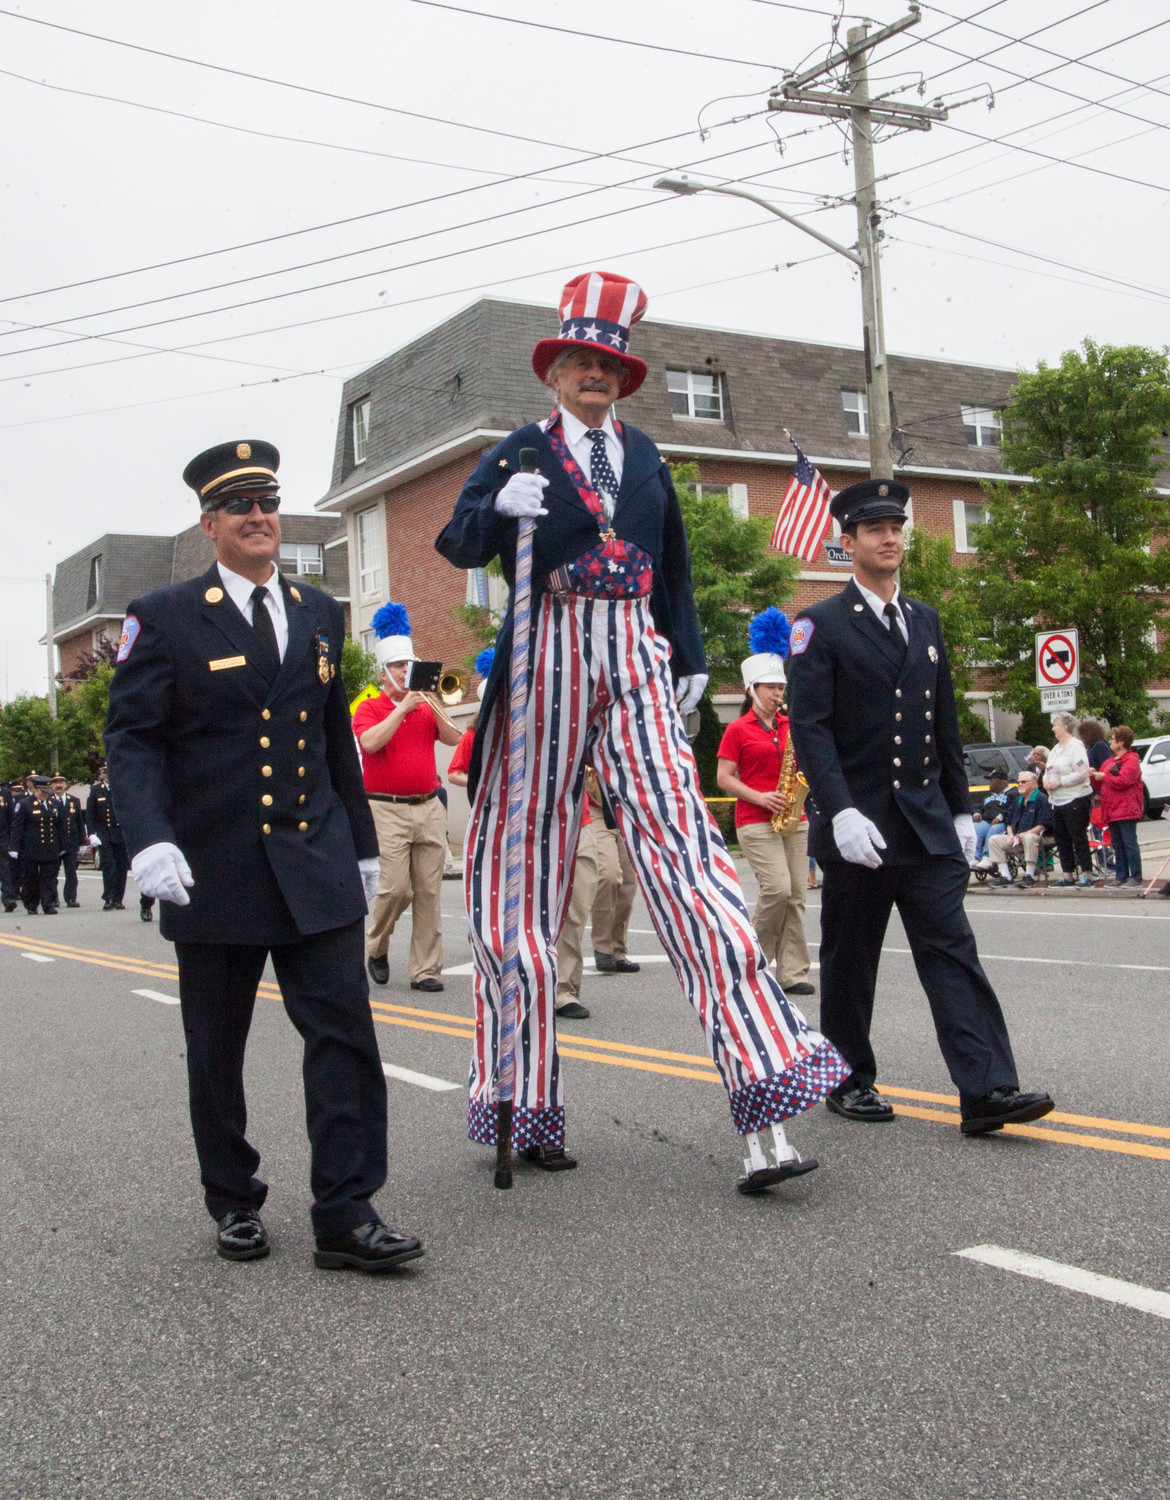 Uncle sam made an appearance, flanked by firemen.